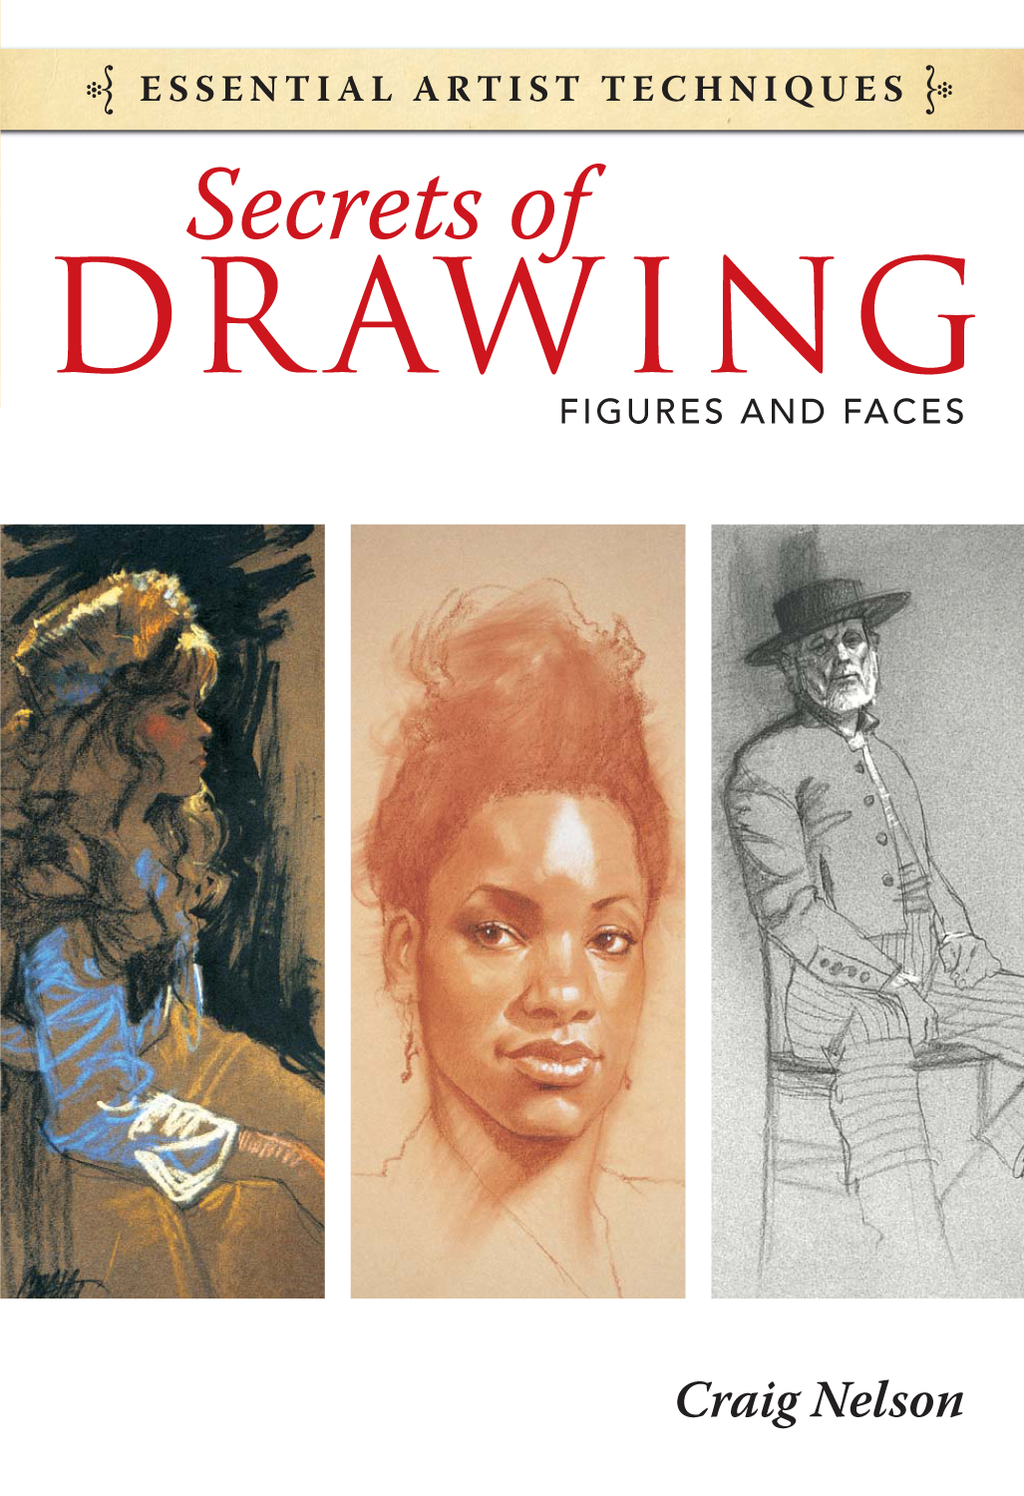 Secrets of Drawing - Figures and Faces By: Craig Nelson